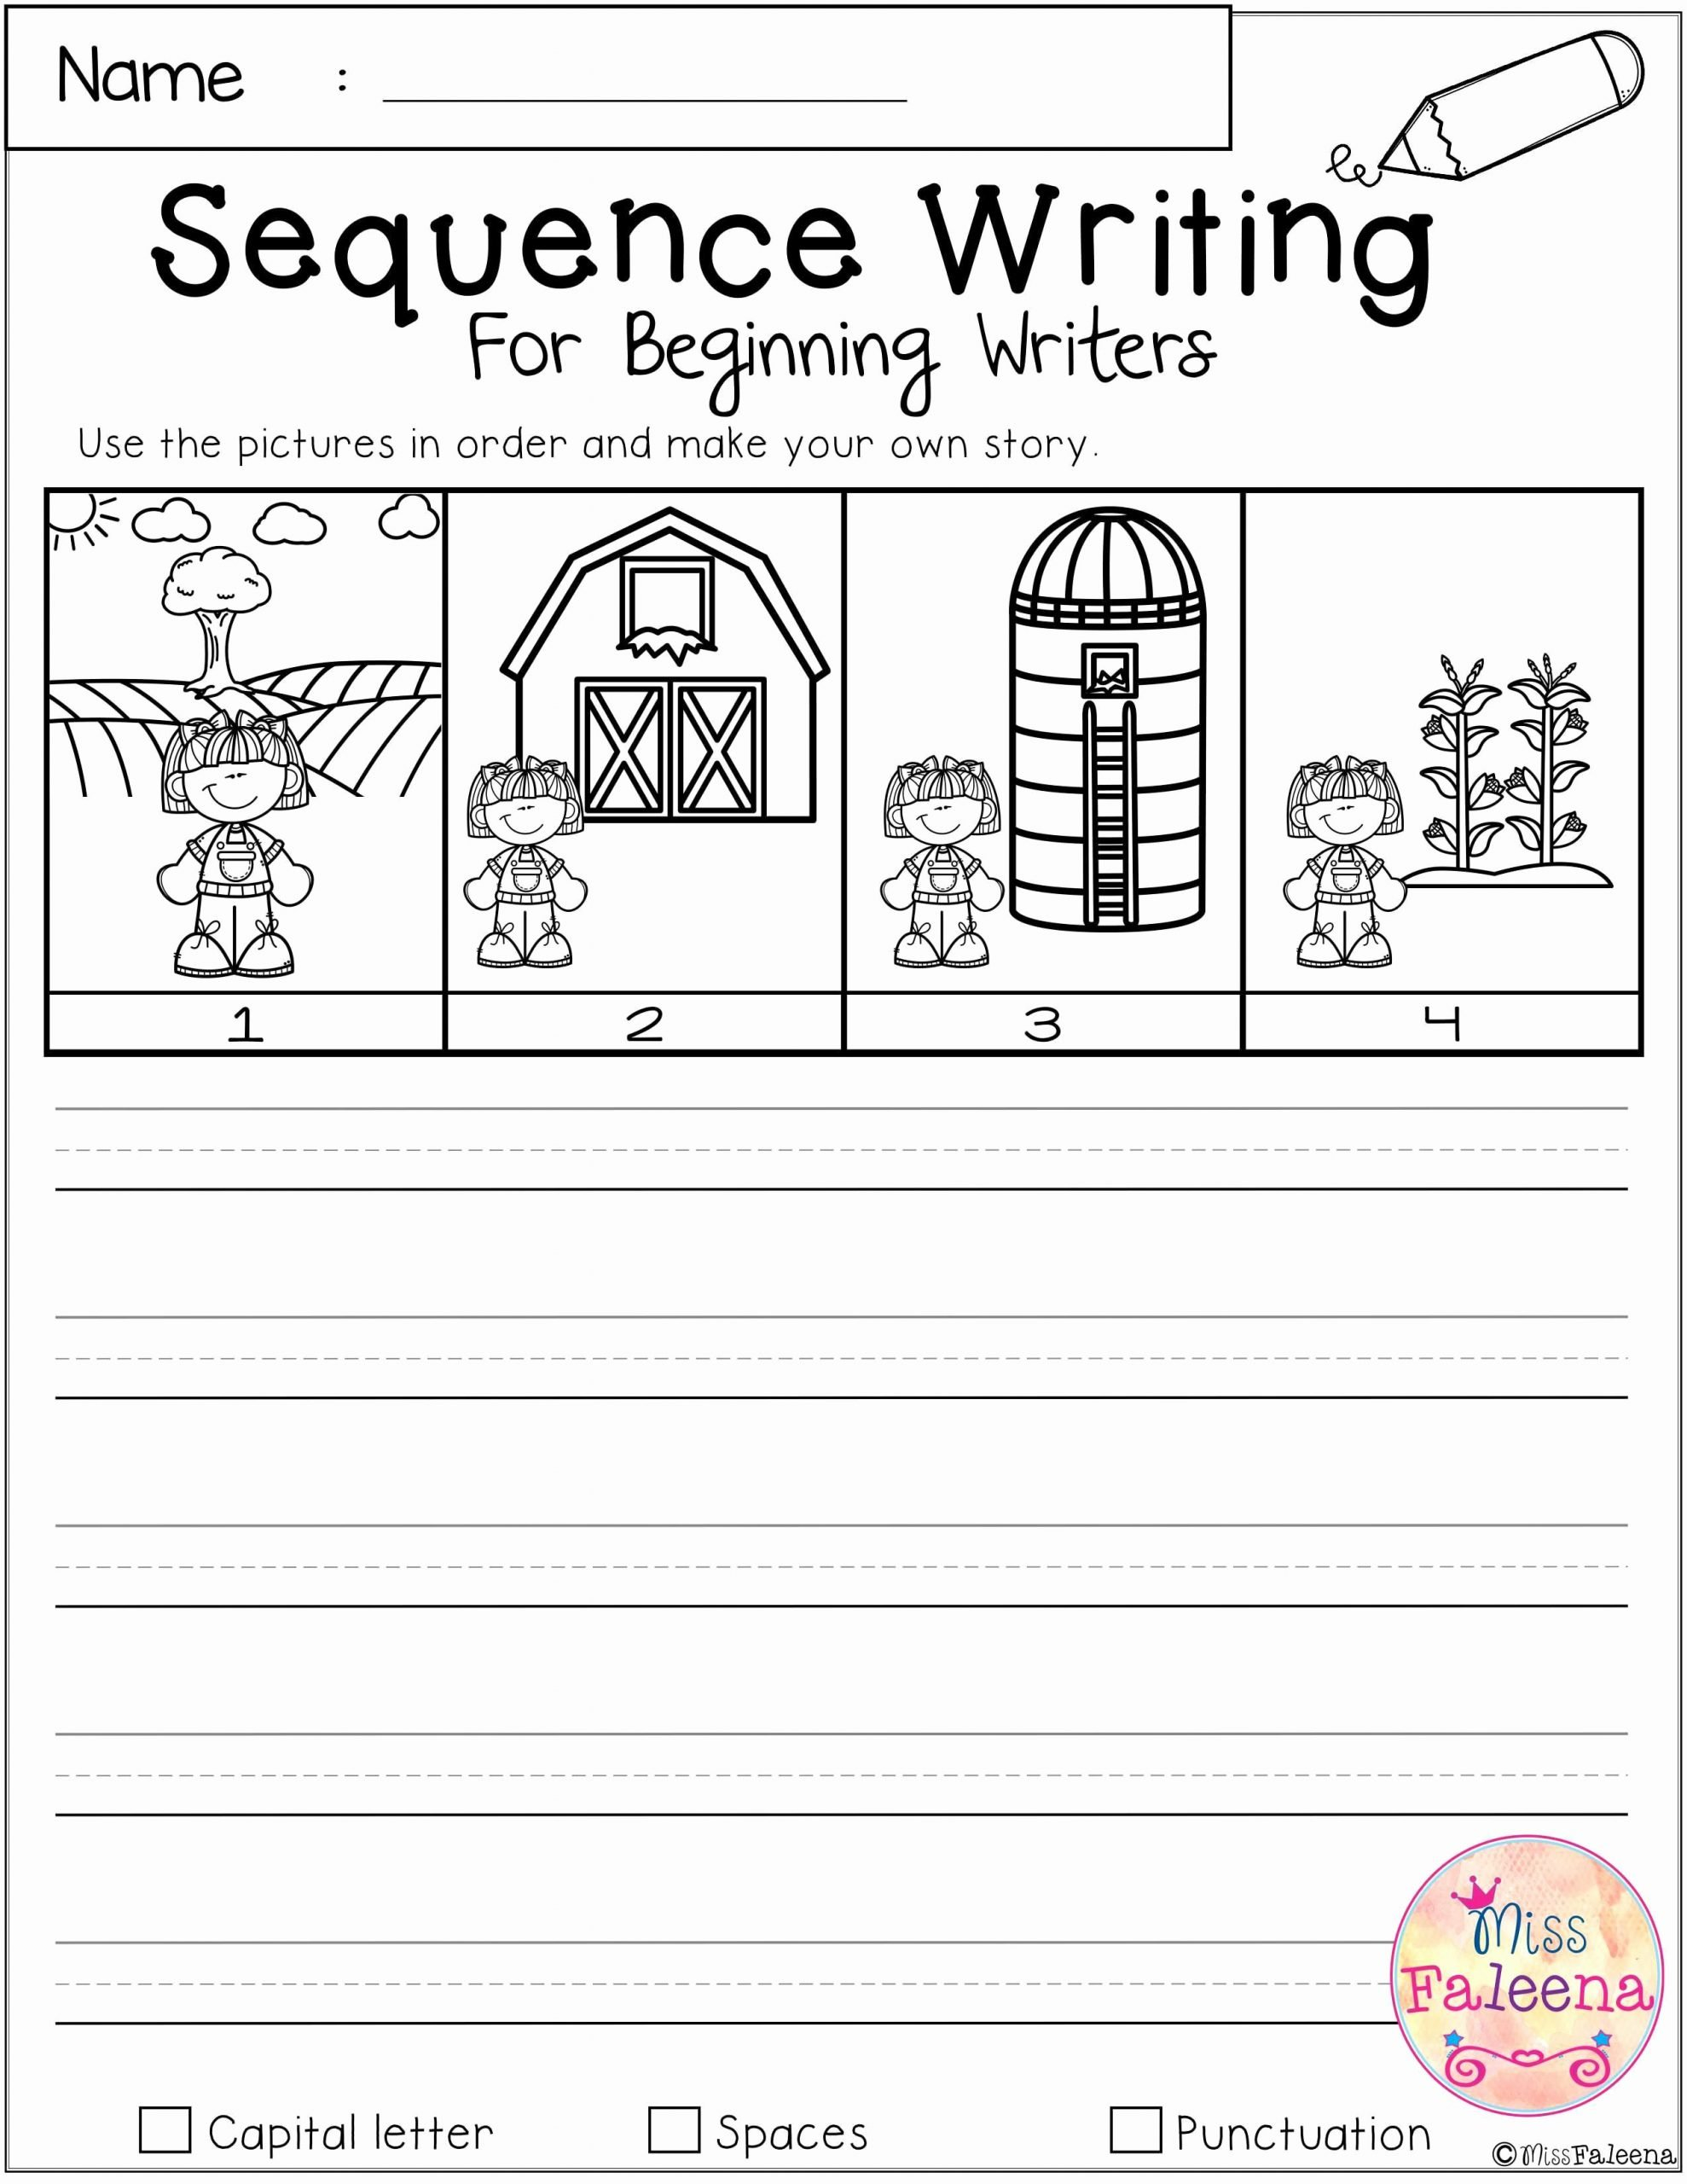 Free Sequencing Worksheets for Preschoolers Fresh Free Sequence Writing for Beginning Writers